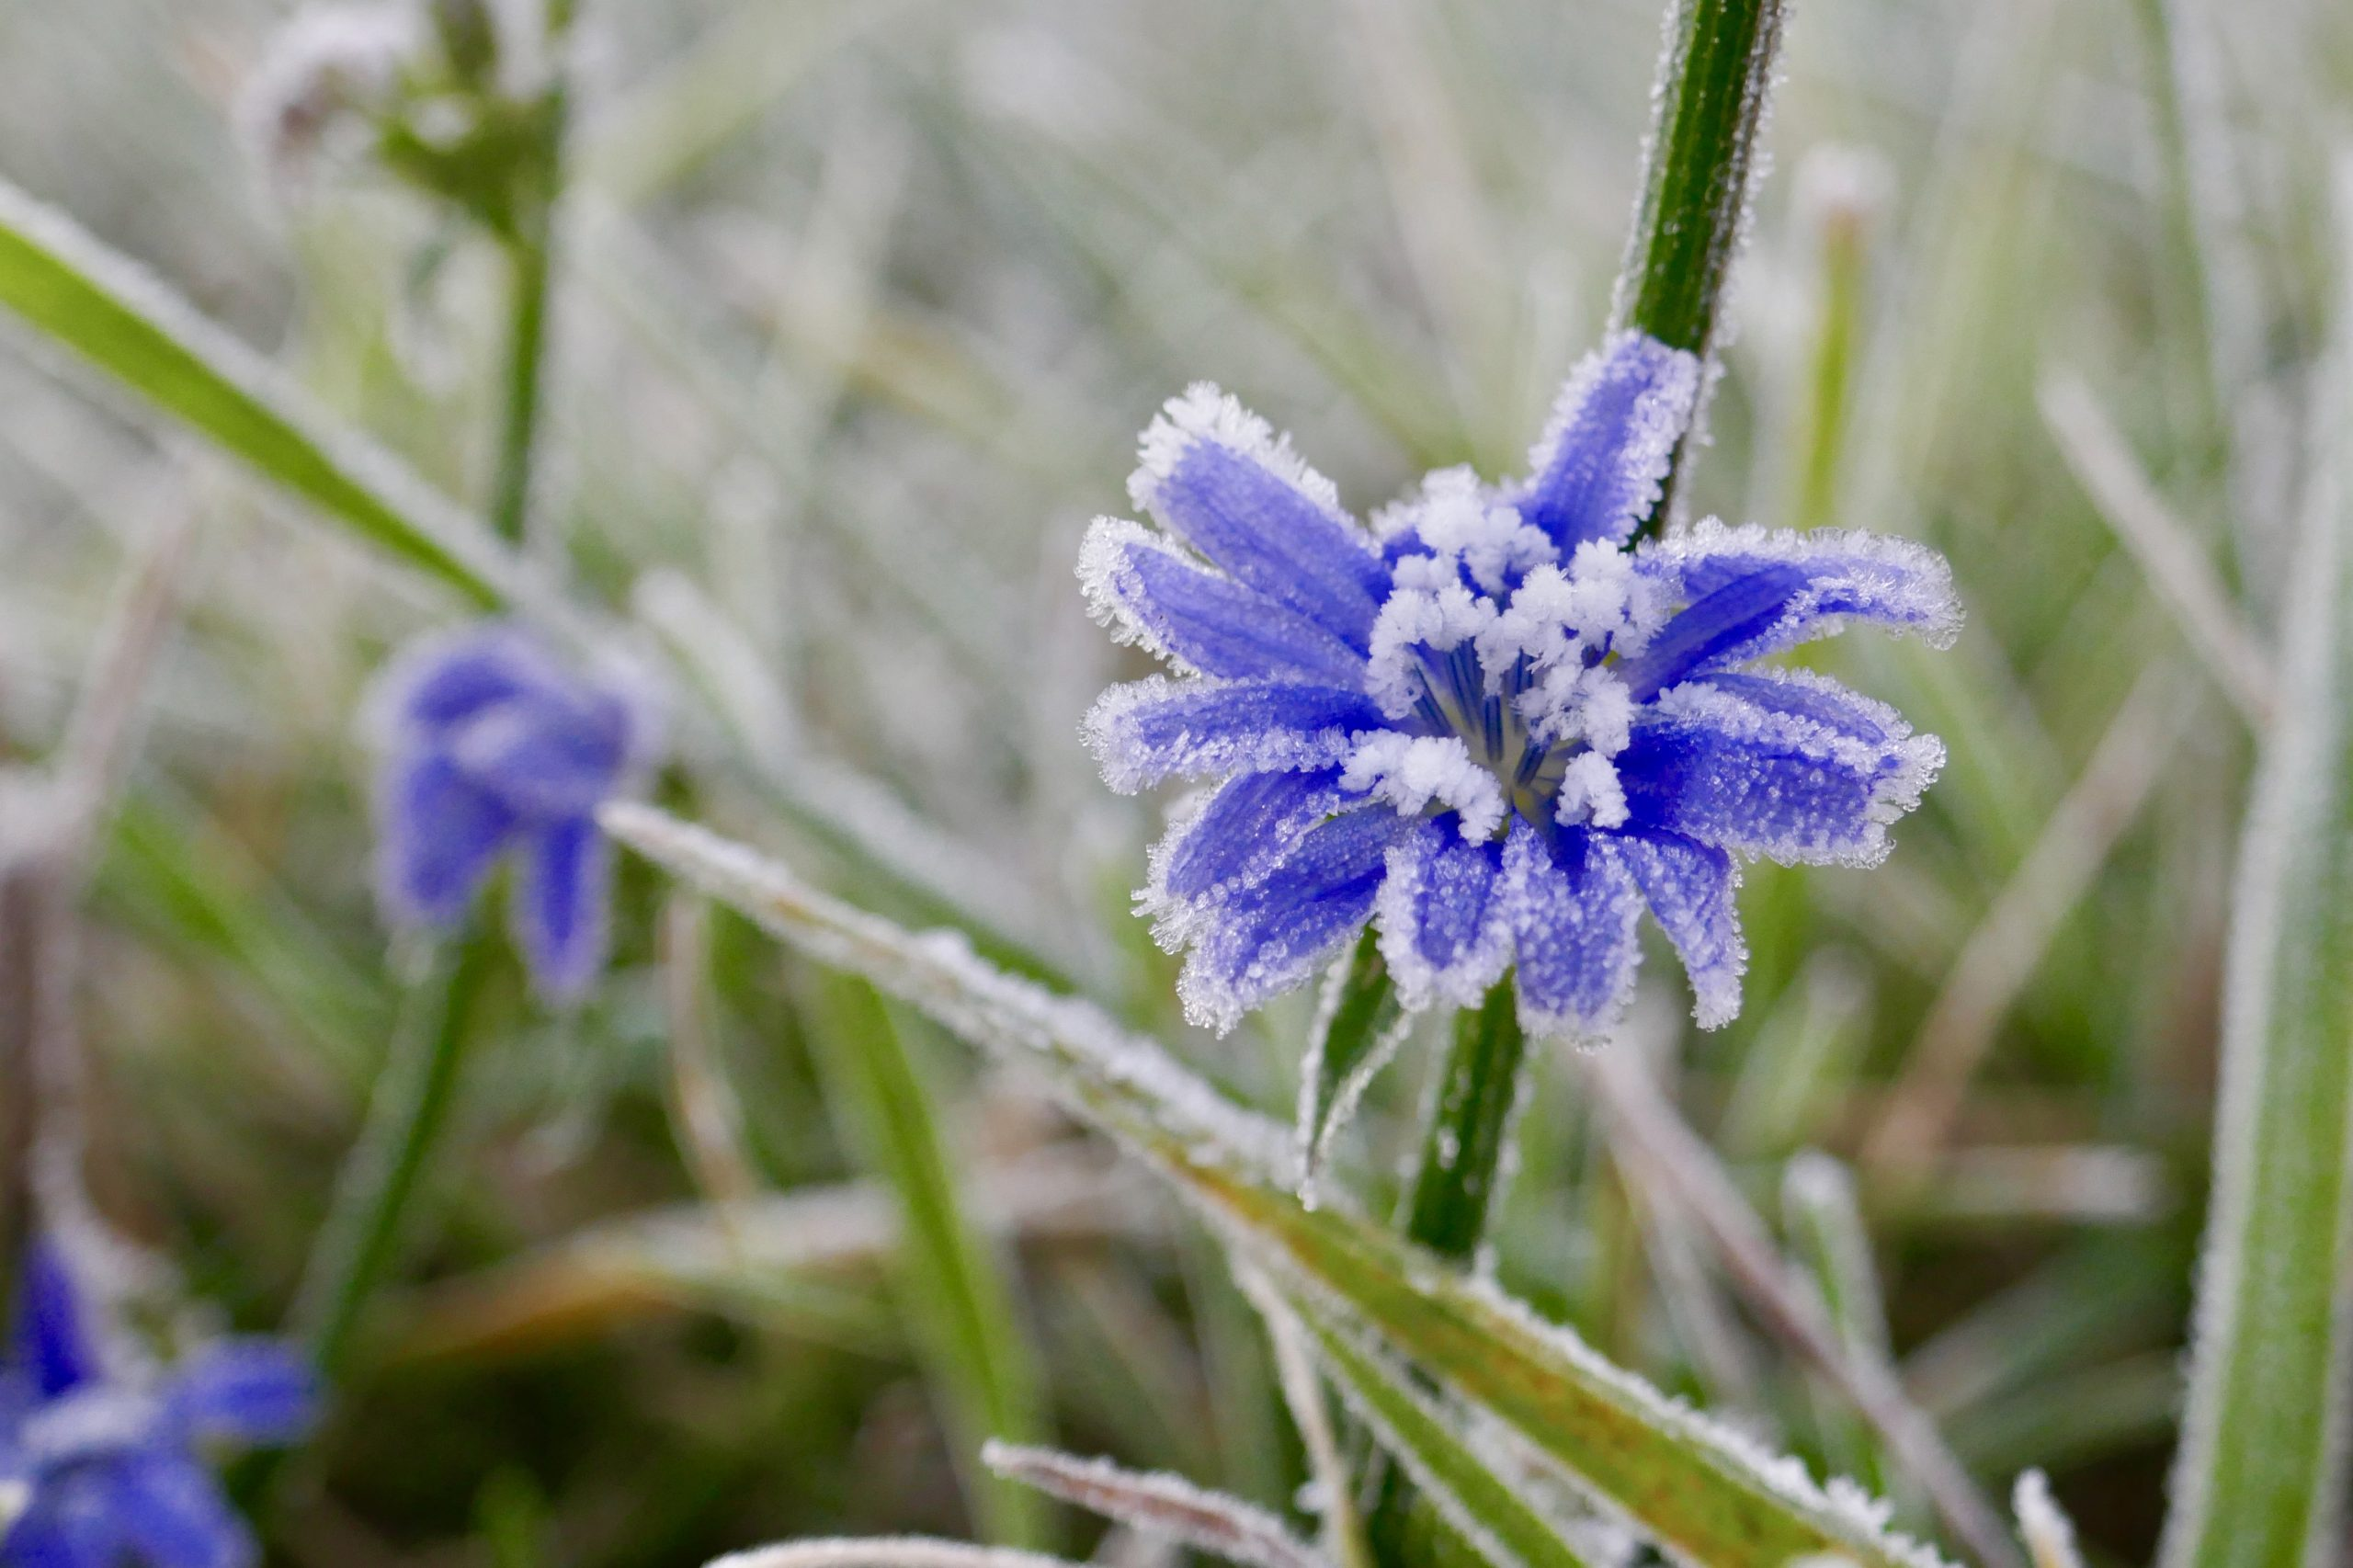 Throwback Thursday to some frosty days at Fermilab. These frosted flowers are wild bachelor buttons. nature, plant, flower, wildflower, bachelor button Photo: Leticia Shaddix